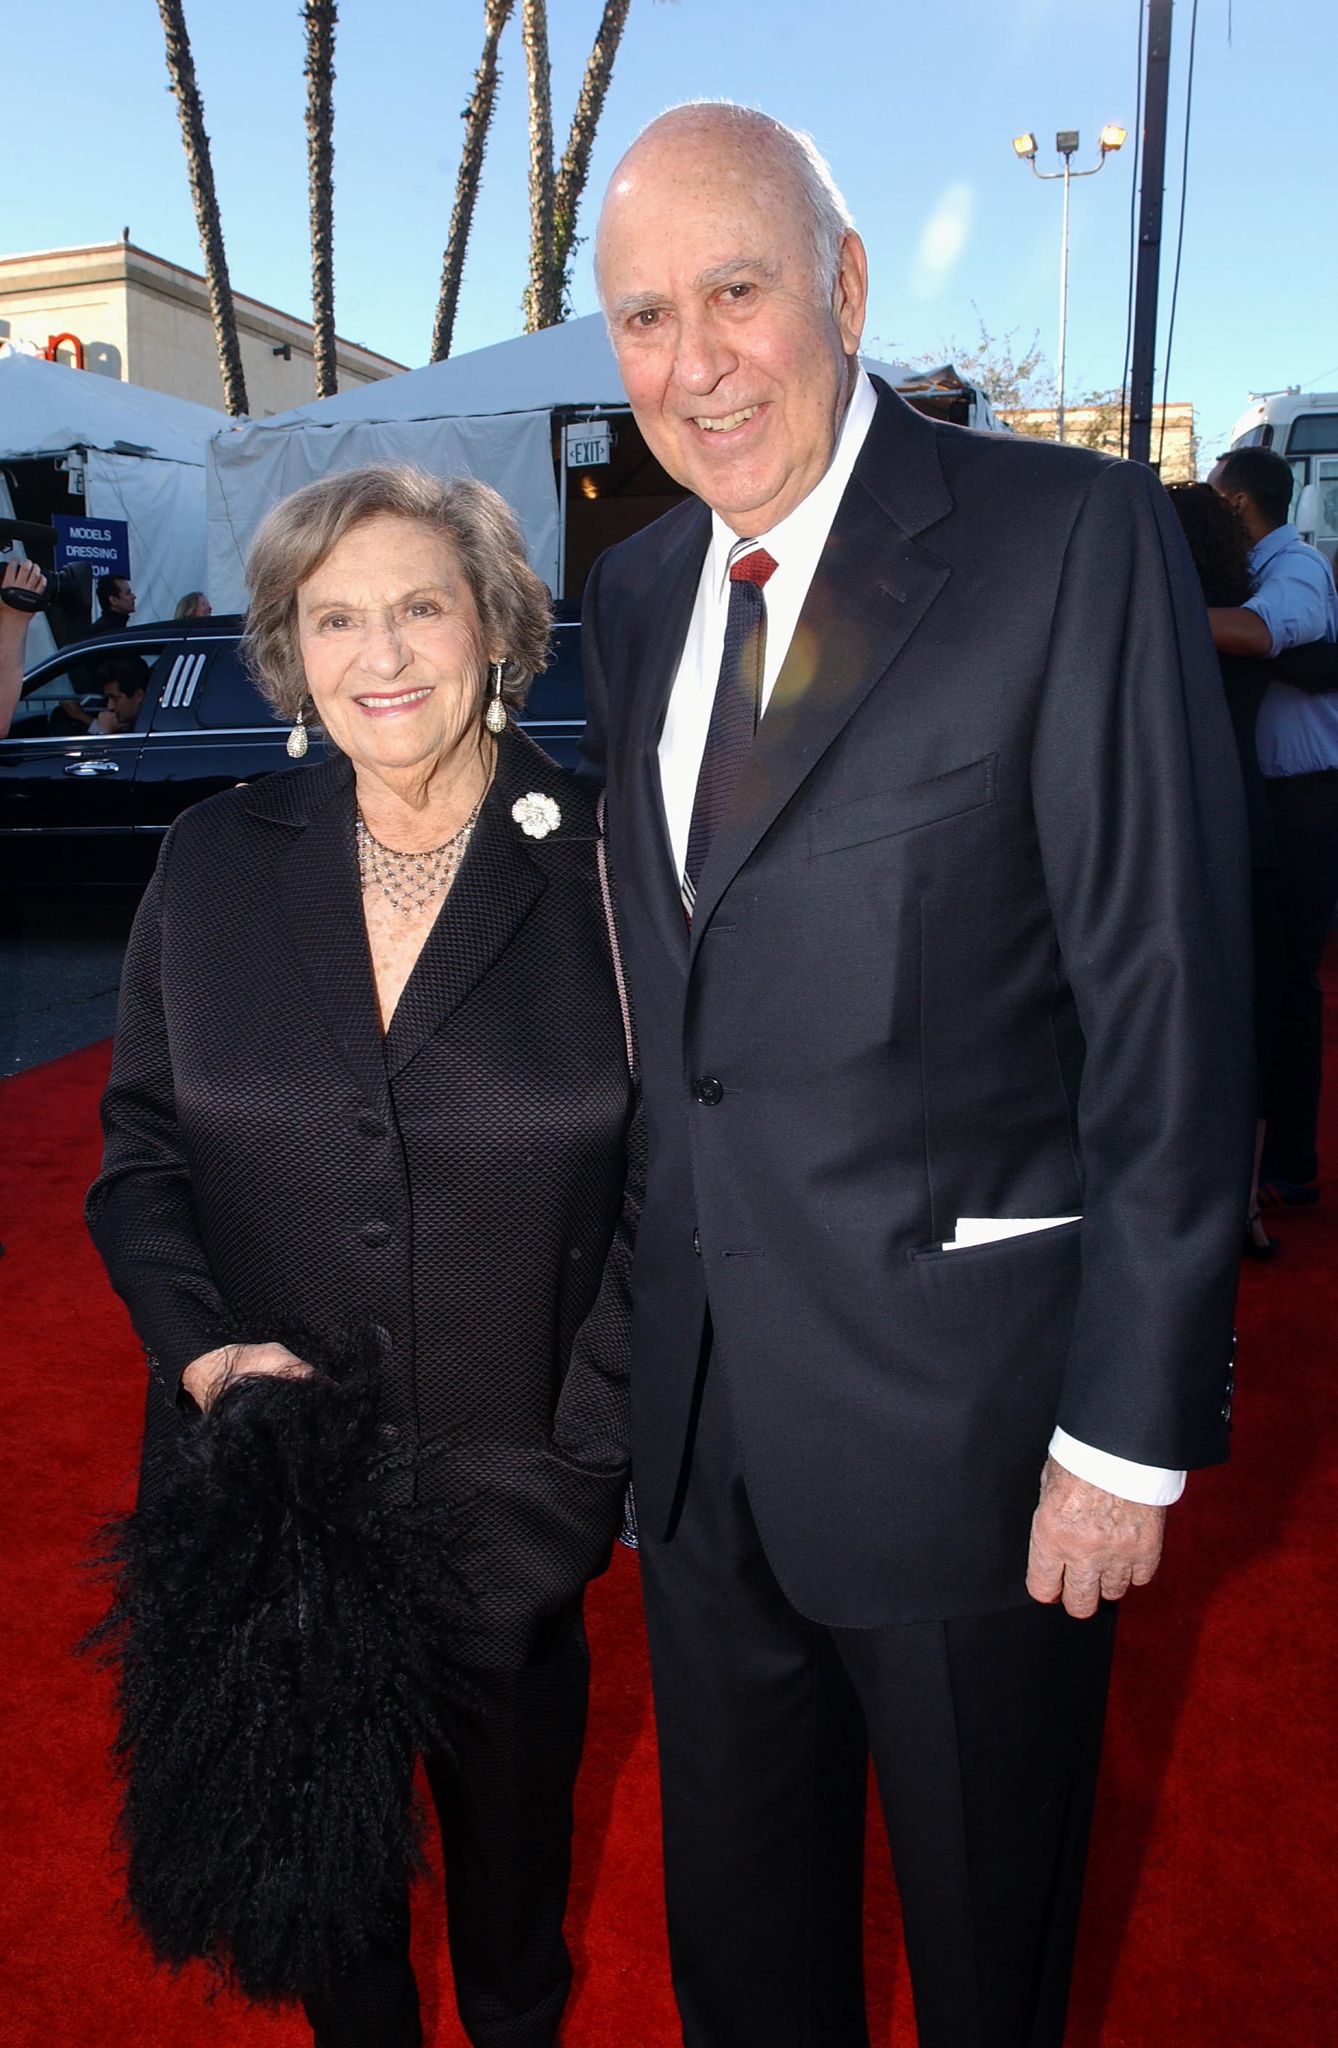 Carl Reiner and wife Estelle attends the TV Land Awards 2003 at the Hollywood Palladium  | Getty Images